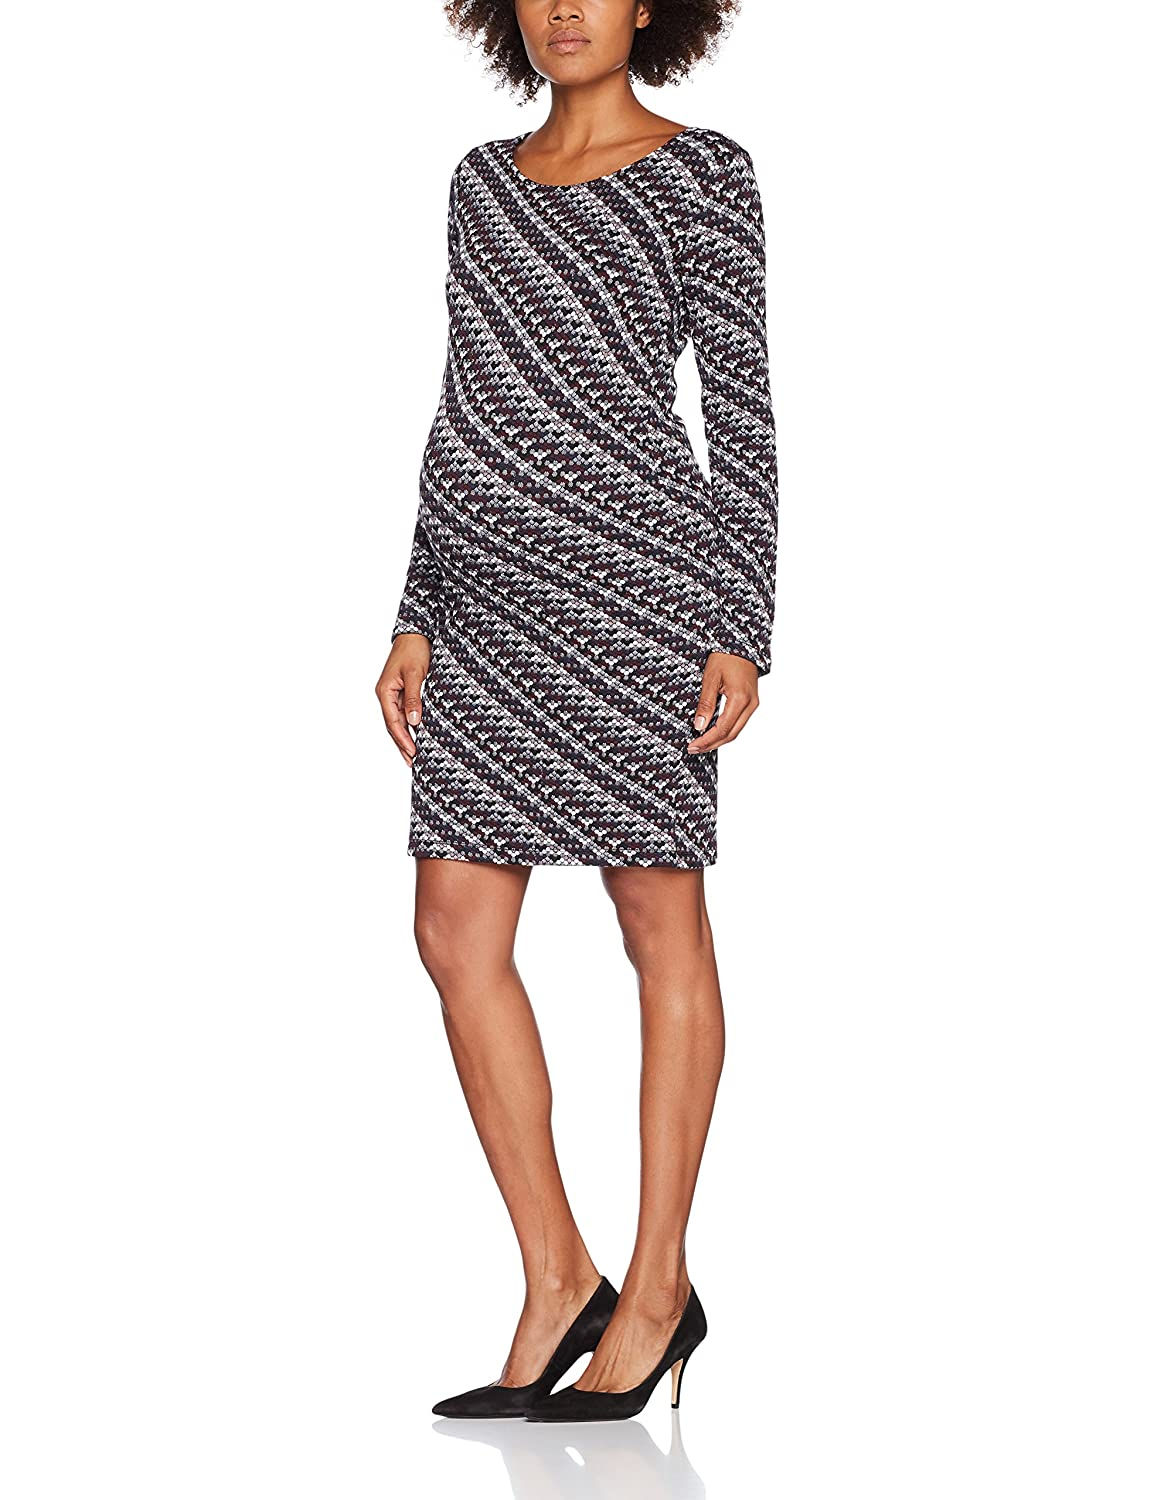 Noppies Women's Maternity Indy 70716